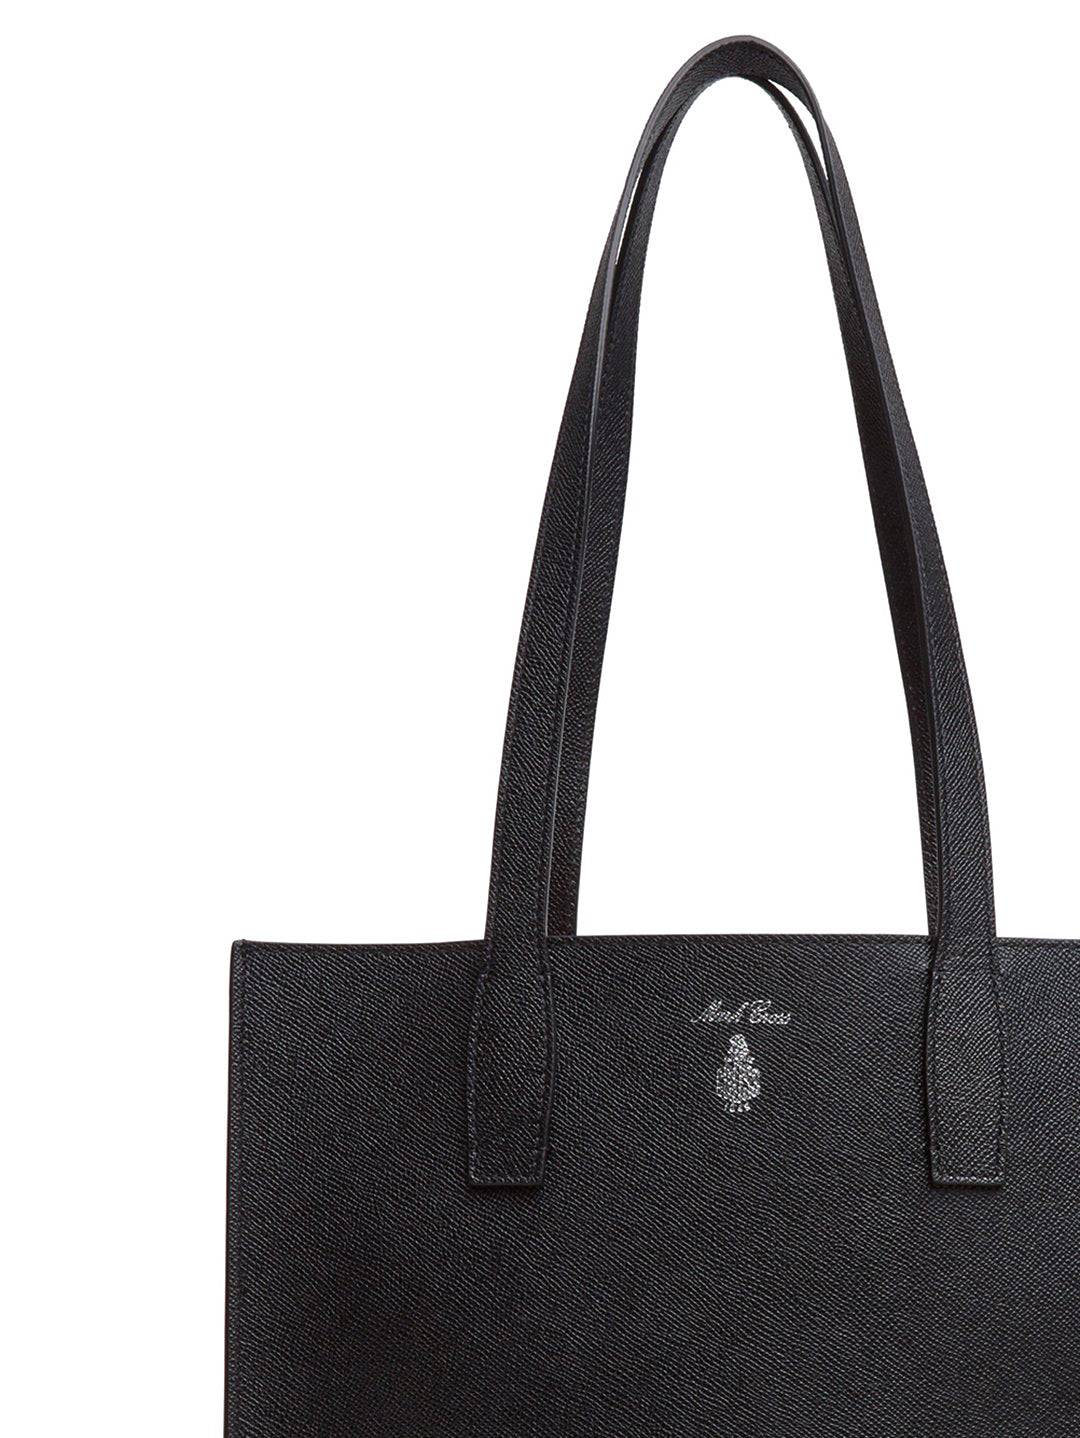 Mark Cross Fitzgerald North South Leather Tote Saffiano Black Detail